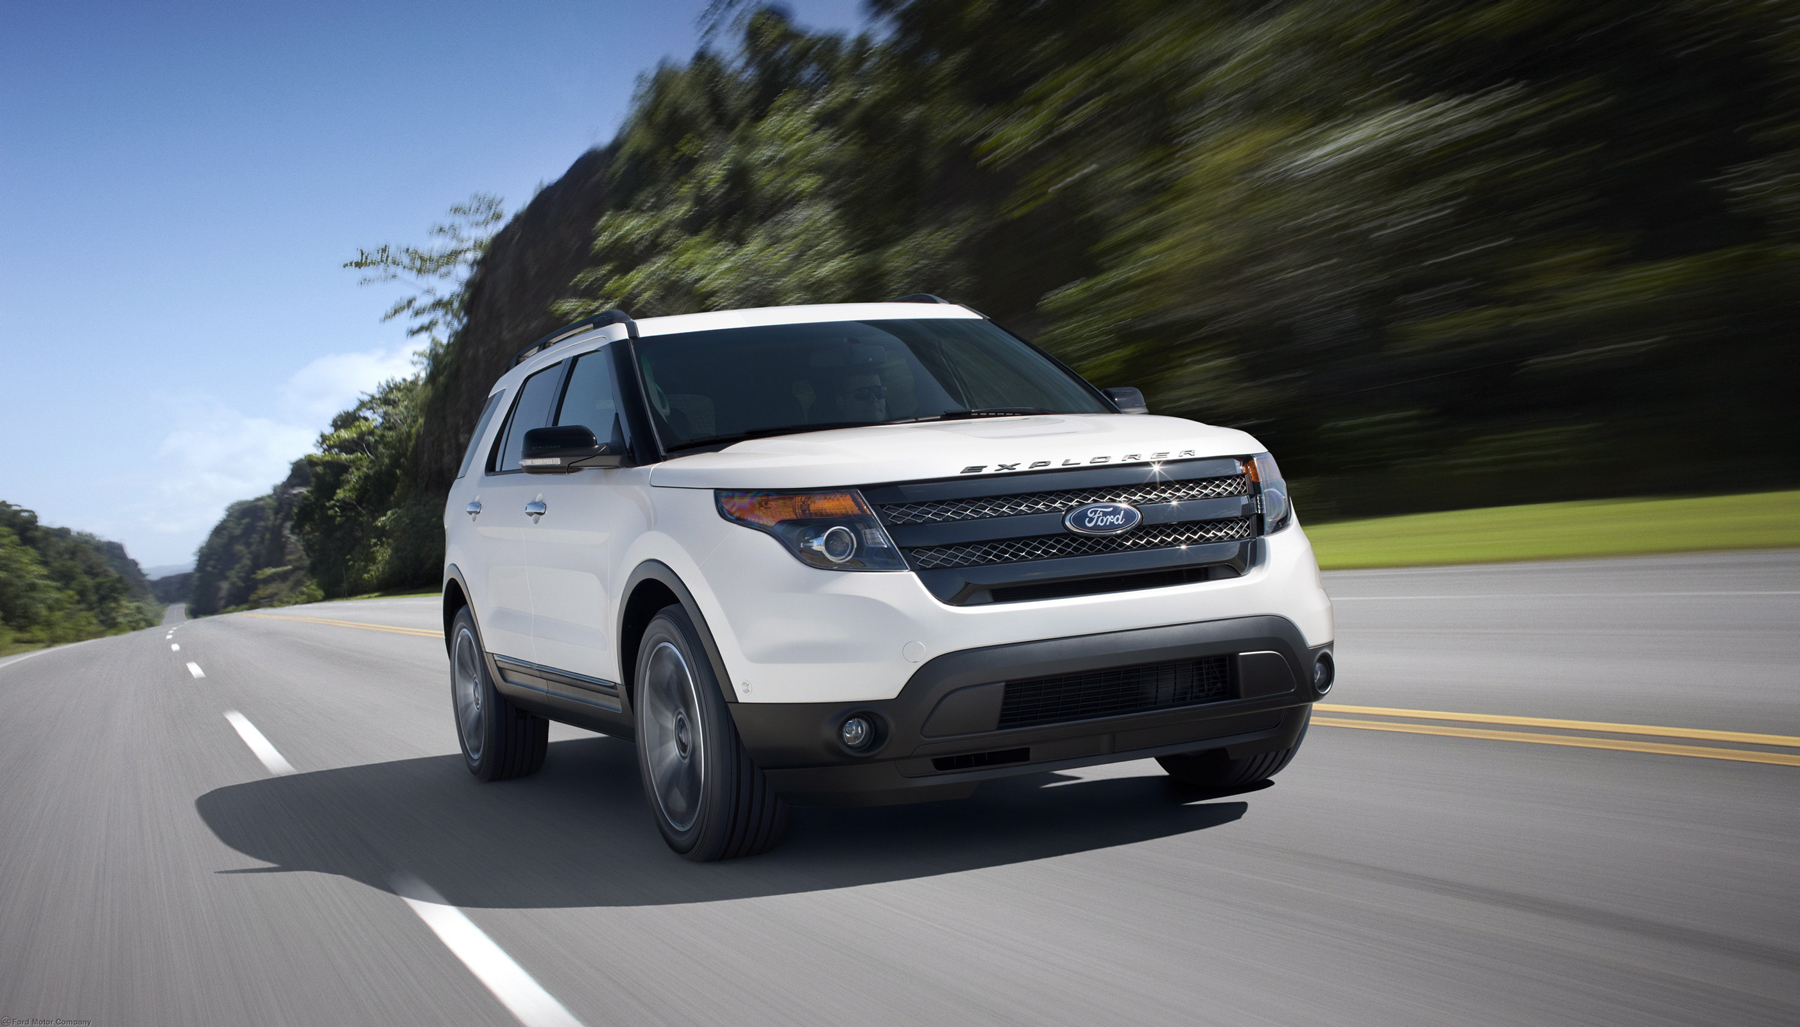 2013 Ford Explorer Built for Today's SUV Driver - Get Off